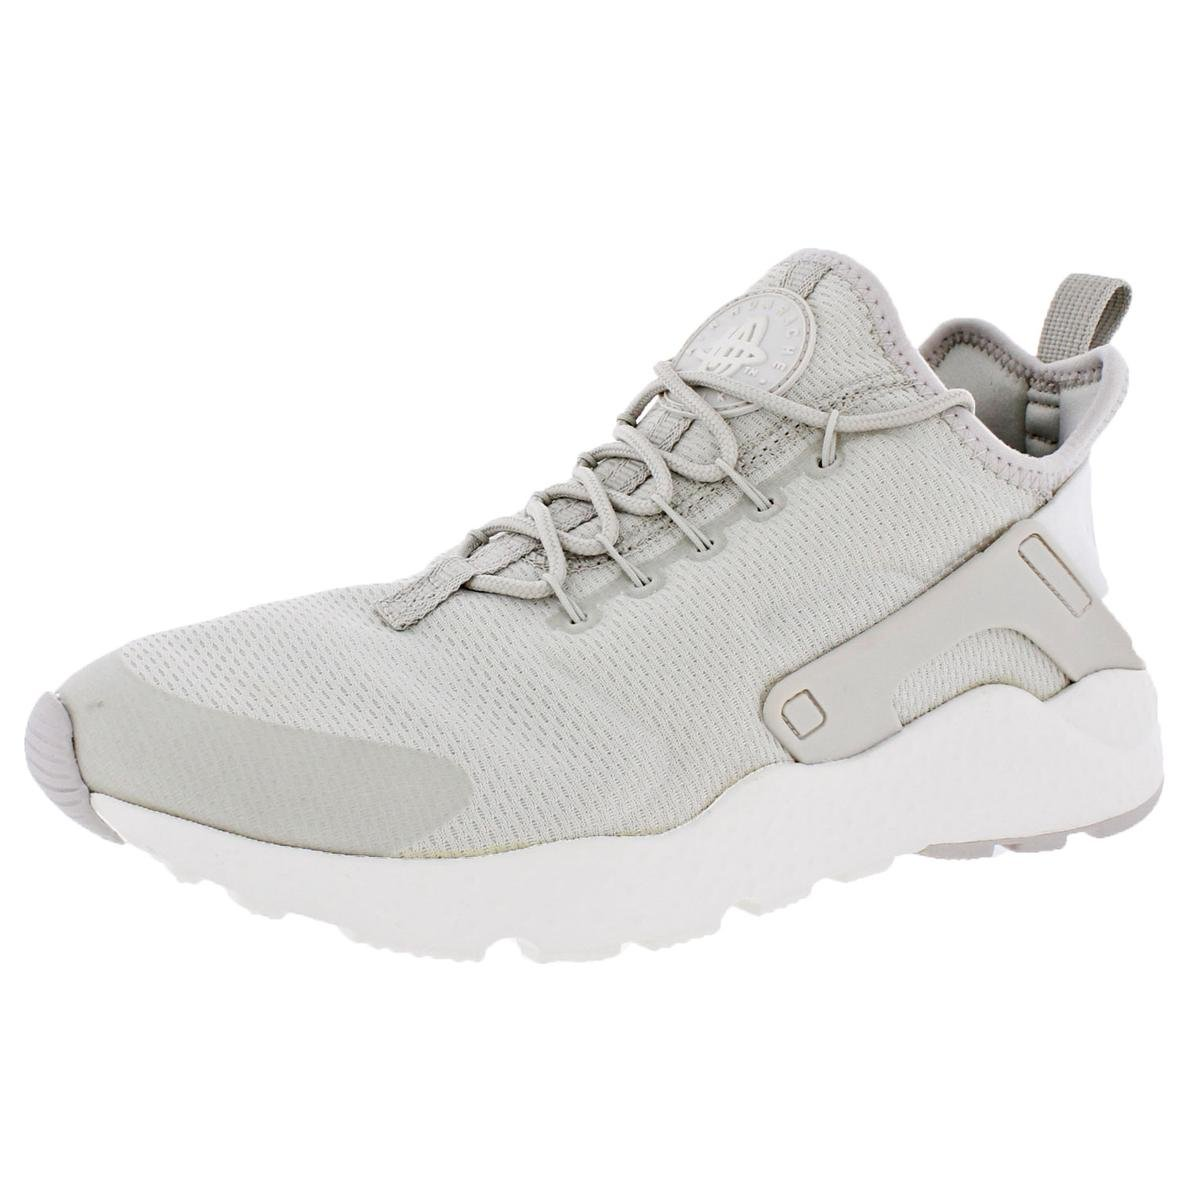 fc106597e607 Galleon - Nike Womens Air Huarache Run Ultra Training Running Shoes White  6.5 Medium (B